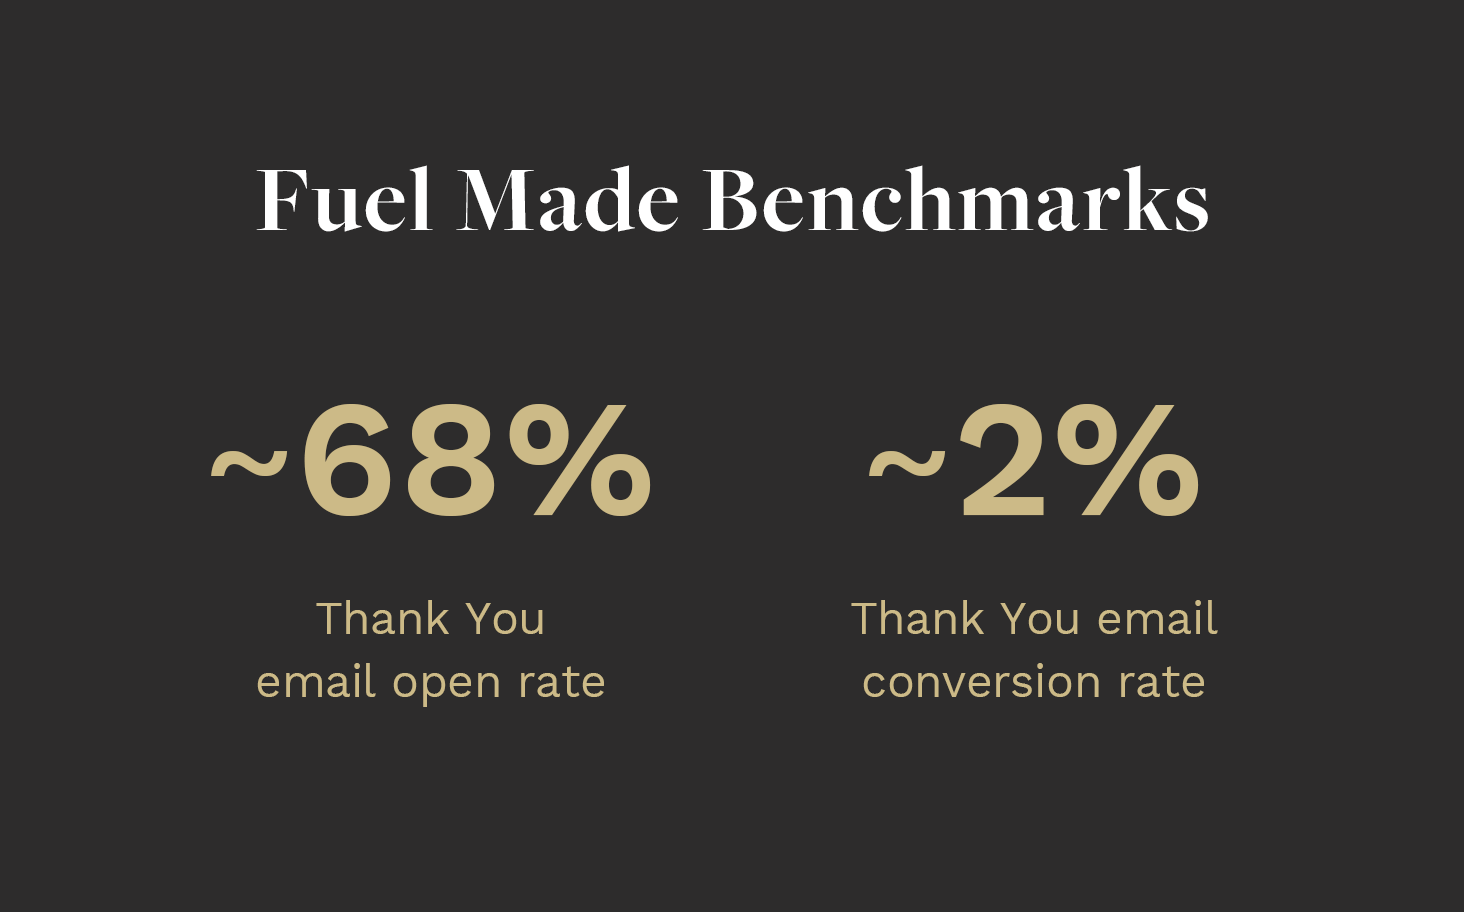 Thank You Email Benchmarks